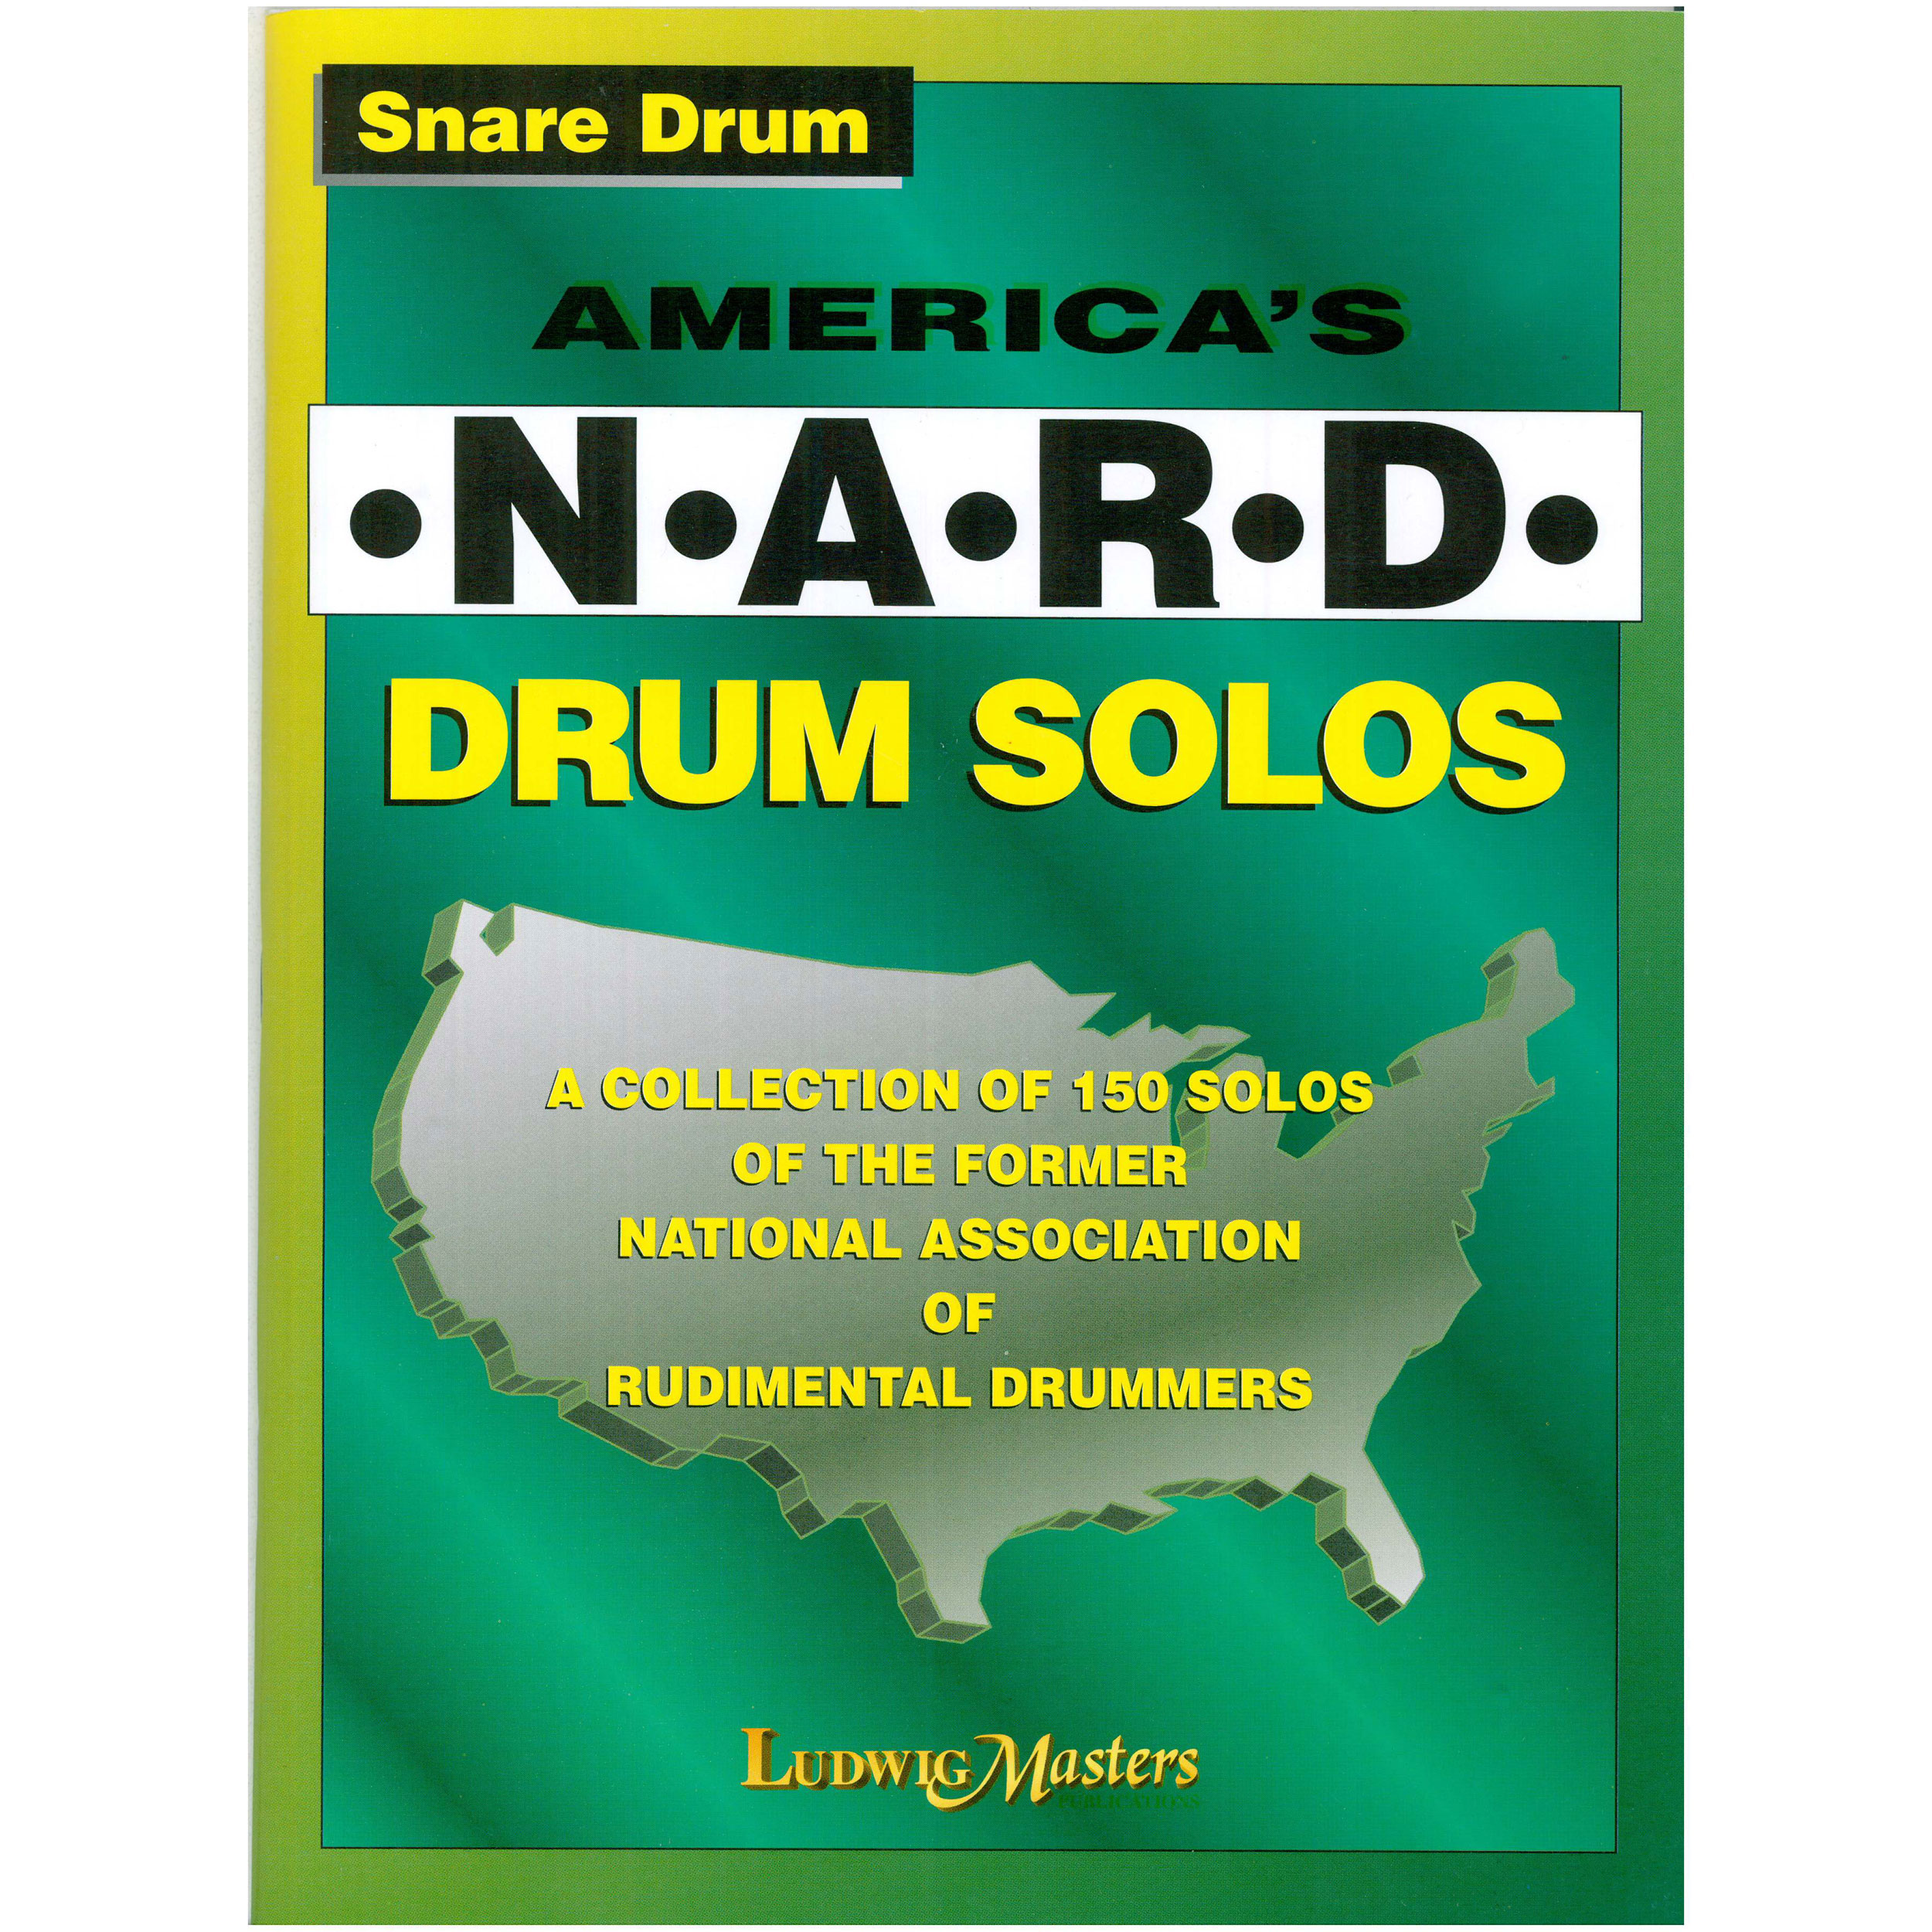 National Association of Rudimental Drummers (NARD) Drum Solos